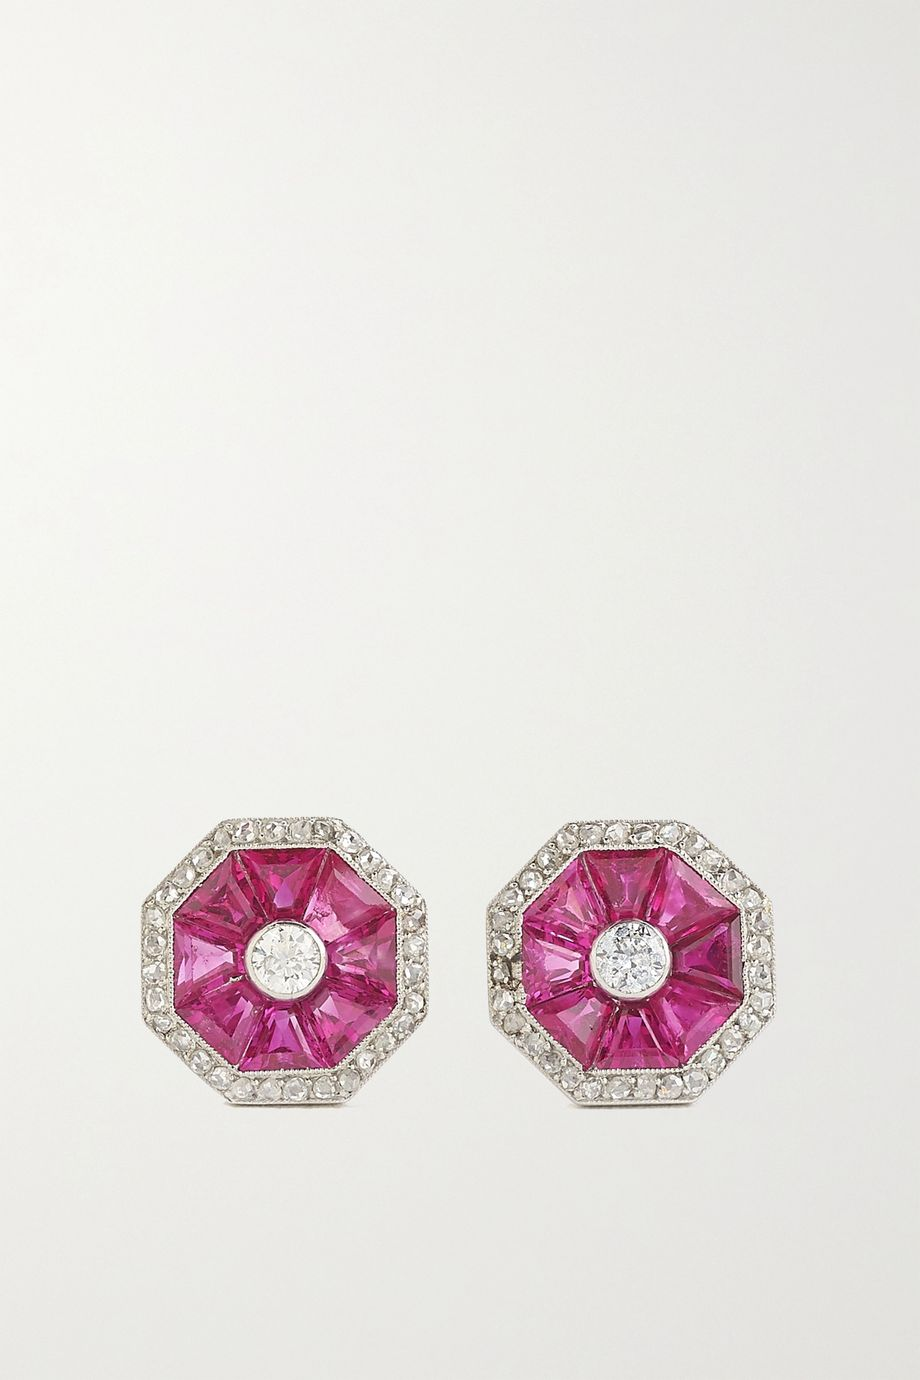 Fred Leighton Collection 14-karat white gold, ruby and diamond earrings